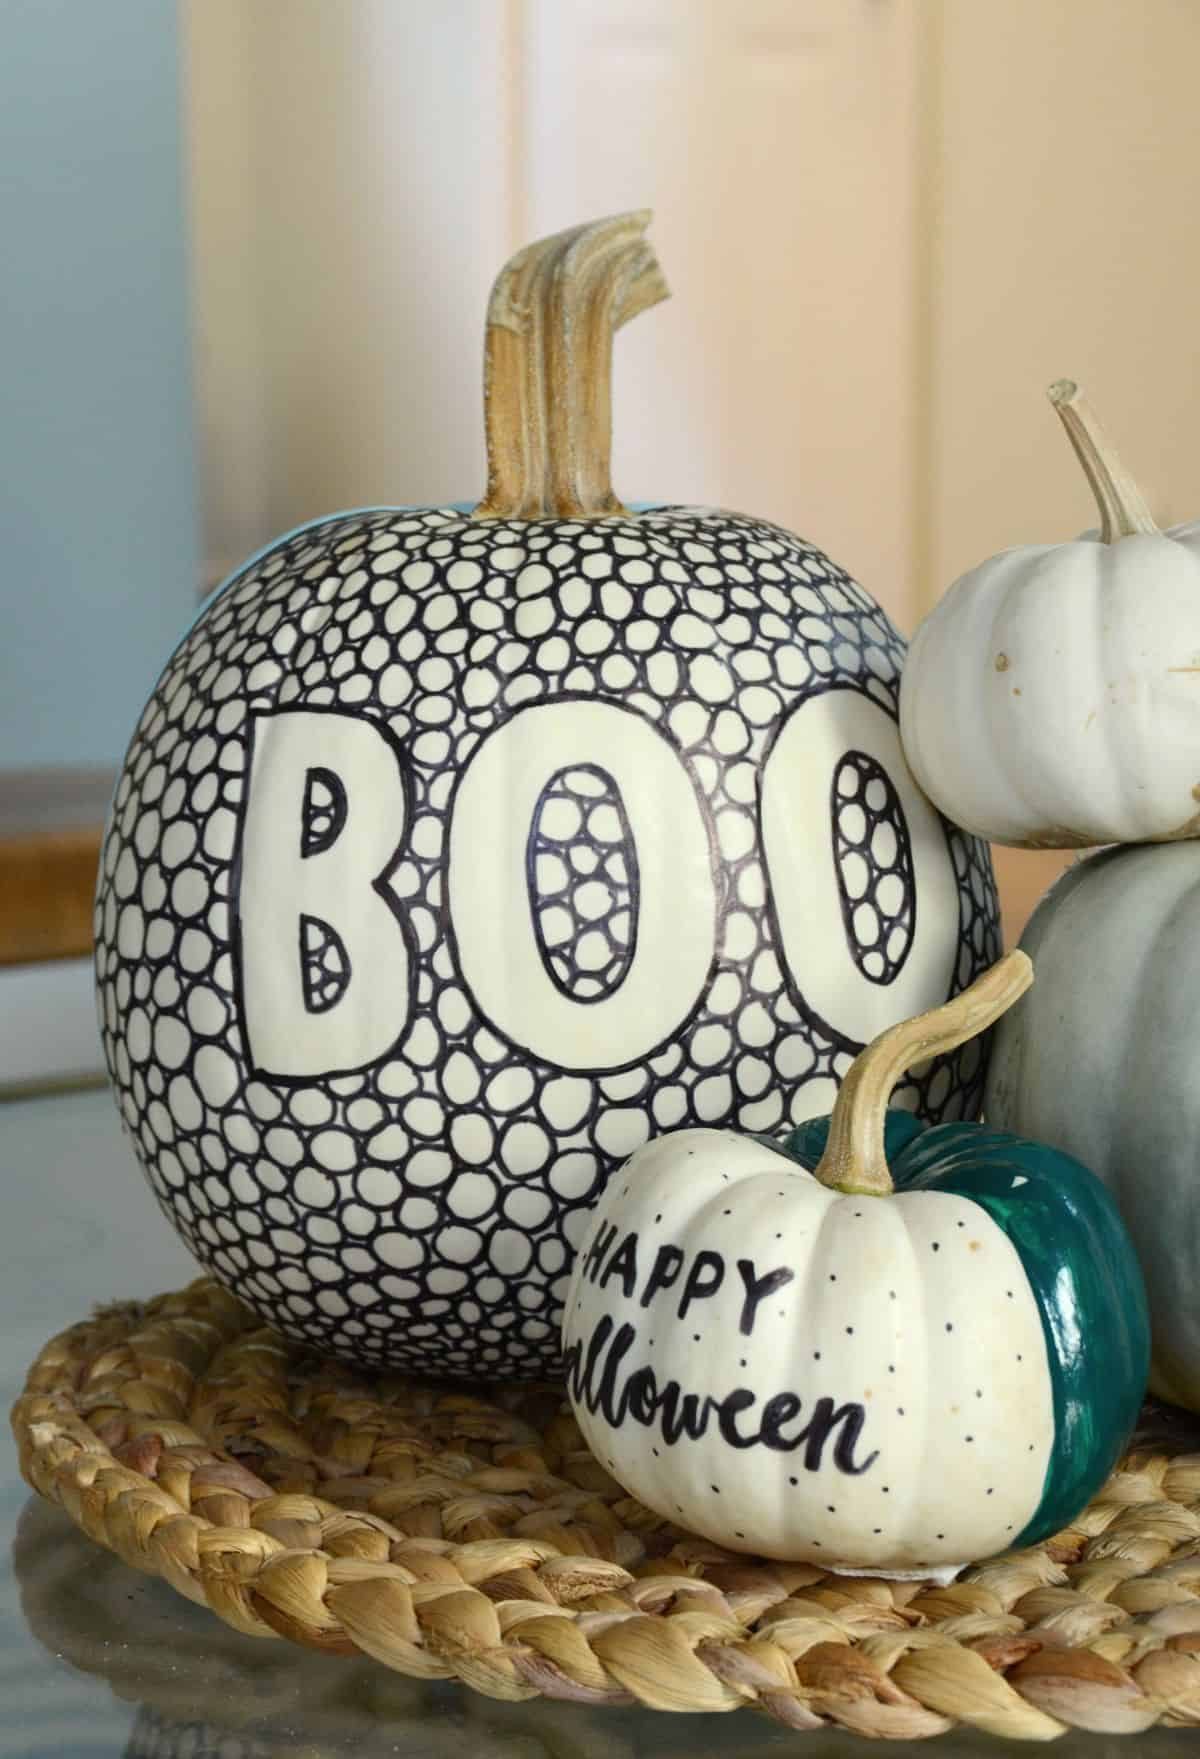 Diy black and white patterned pumpkin for halloween